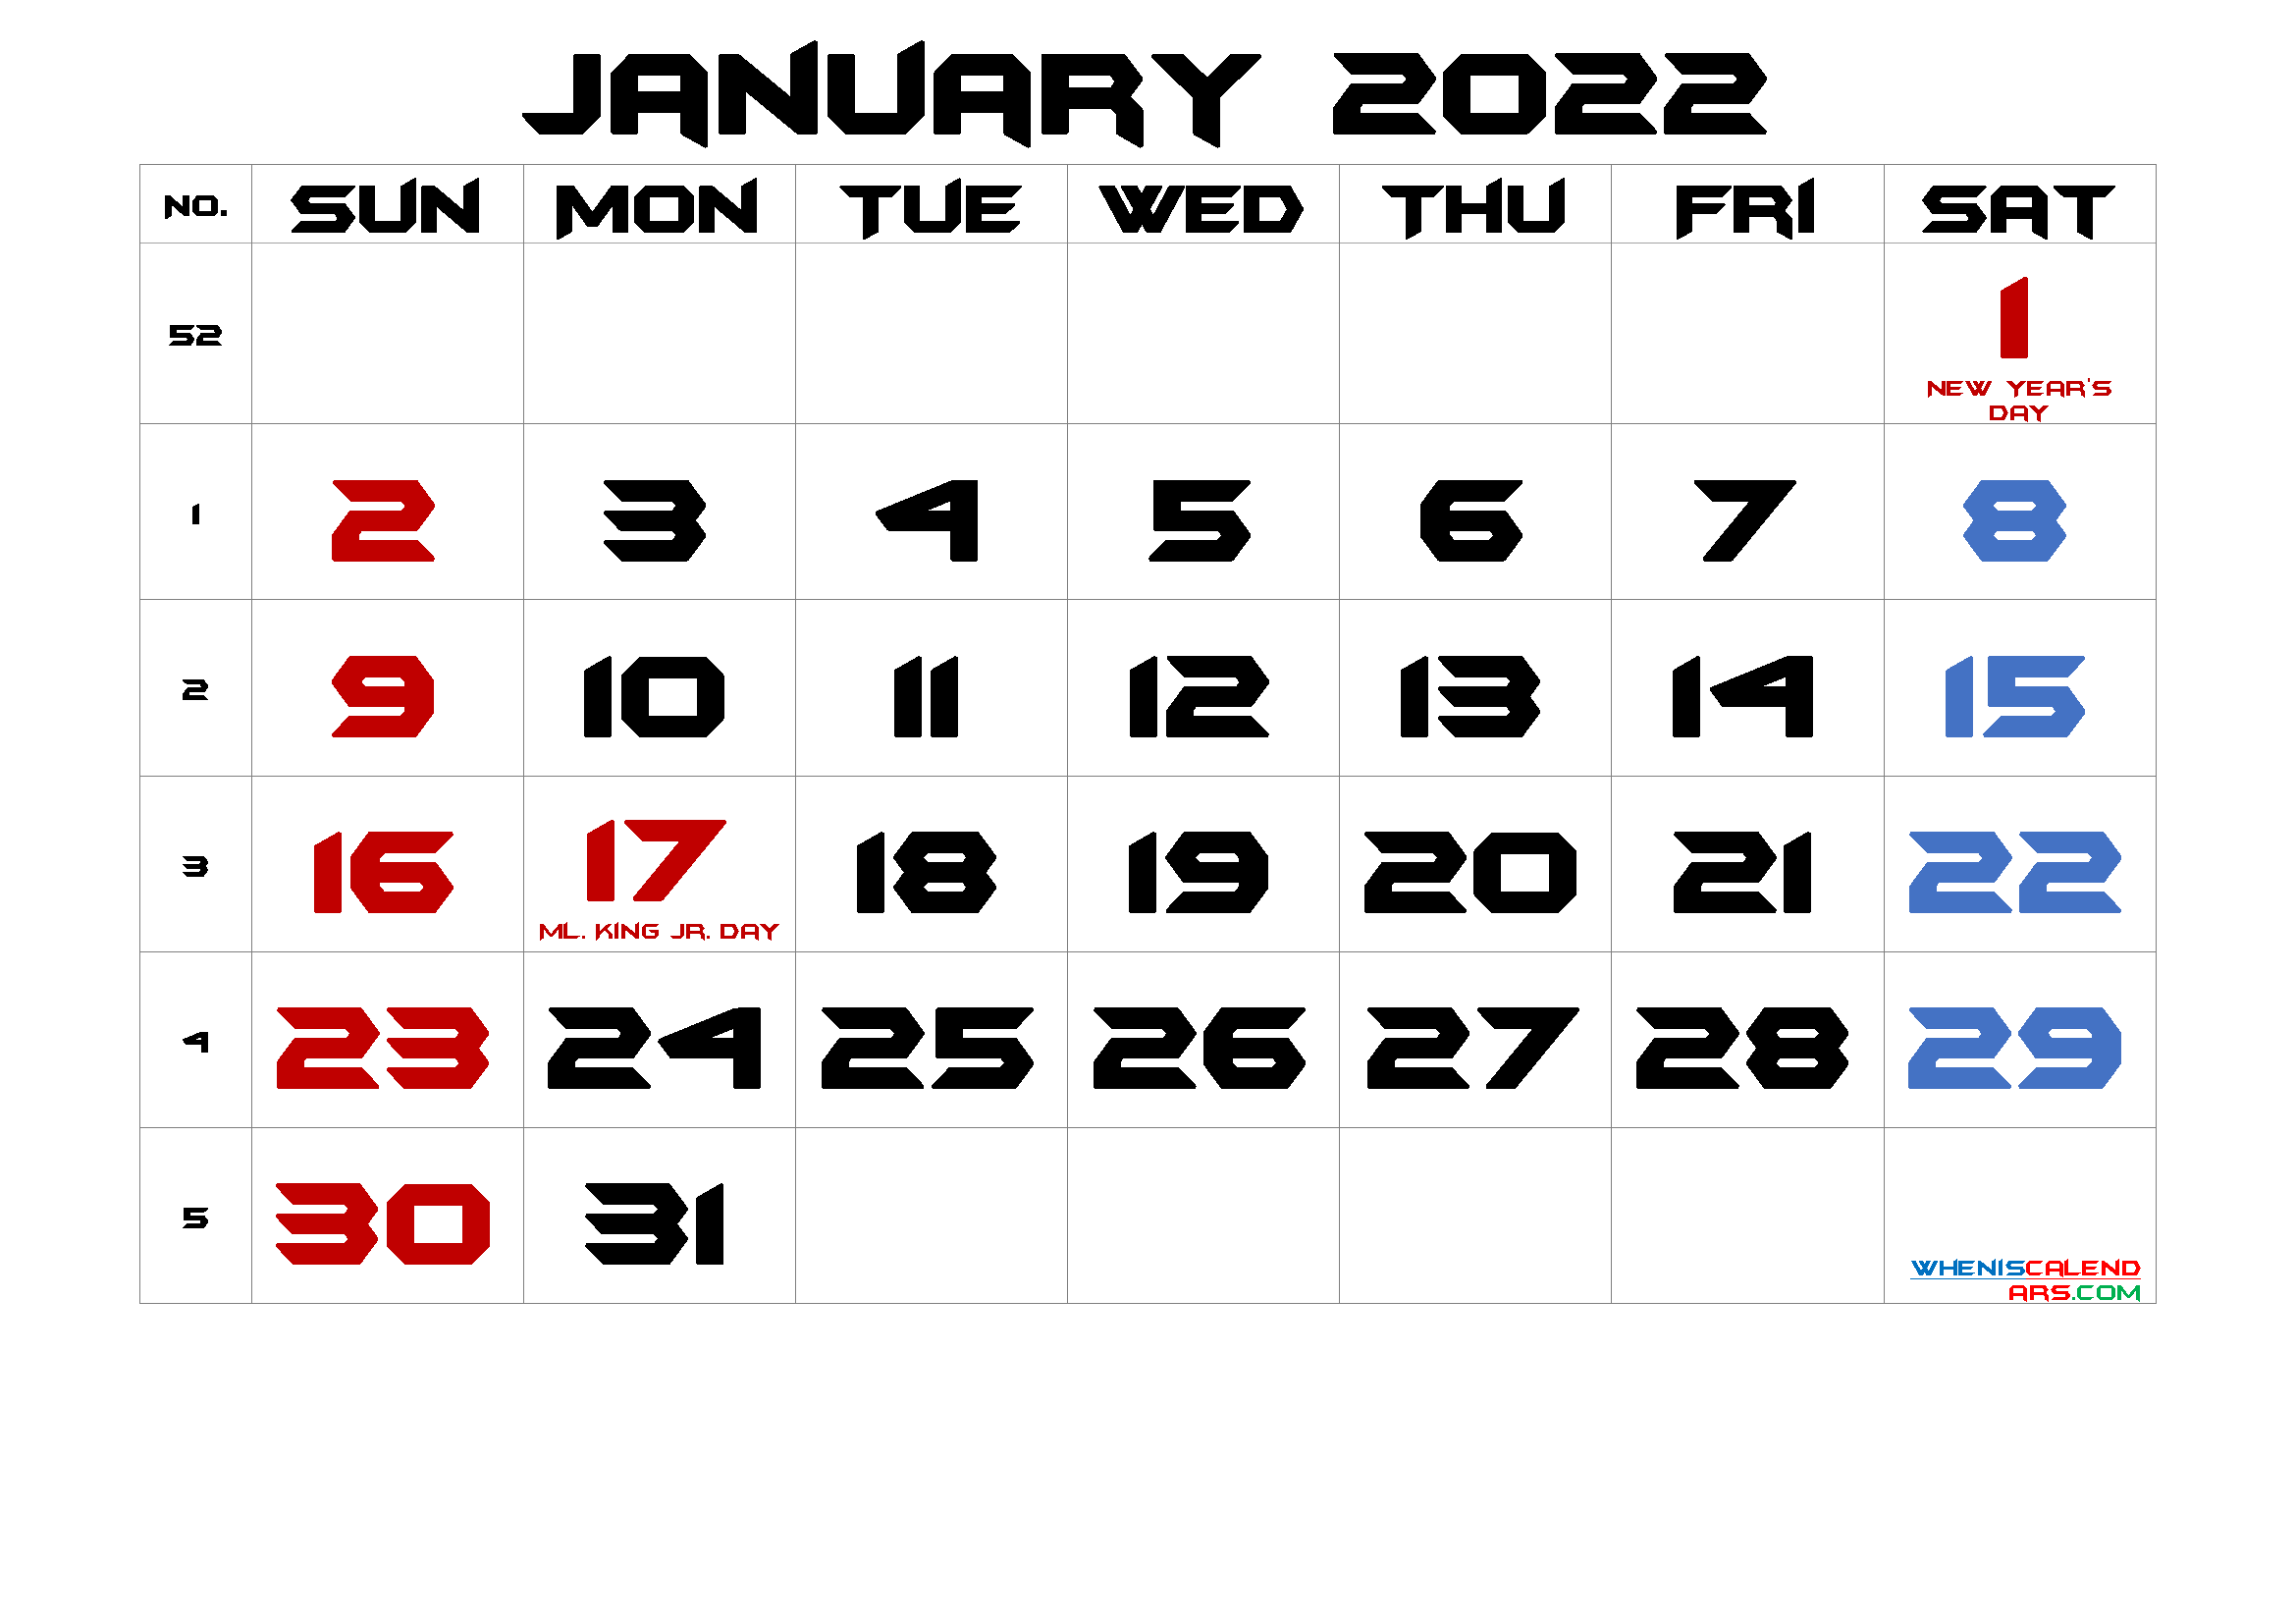 January 2022 Printable Calendar With Holidays In January2022 Printable Calendar Cute